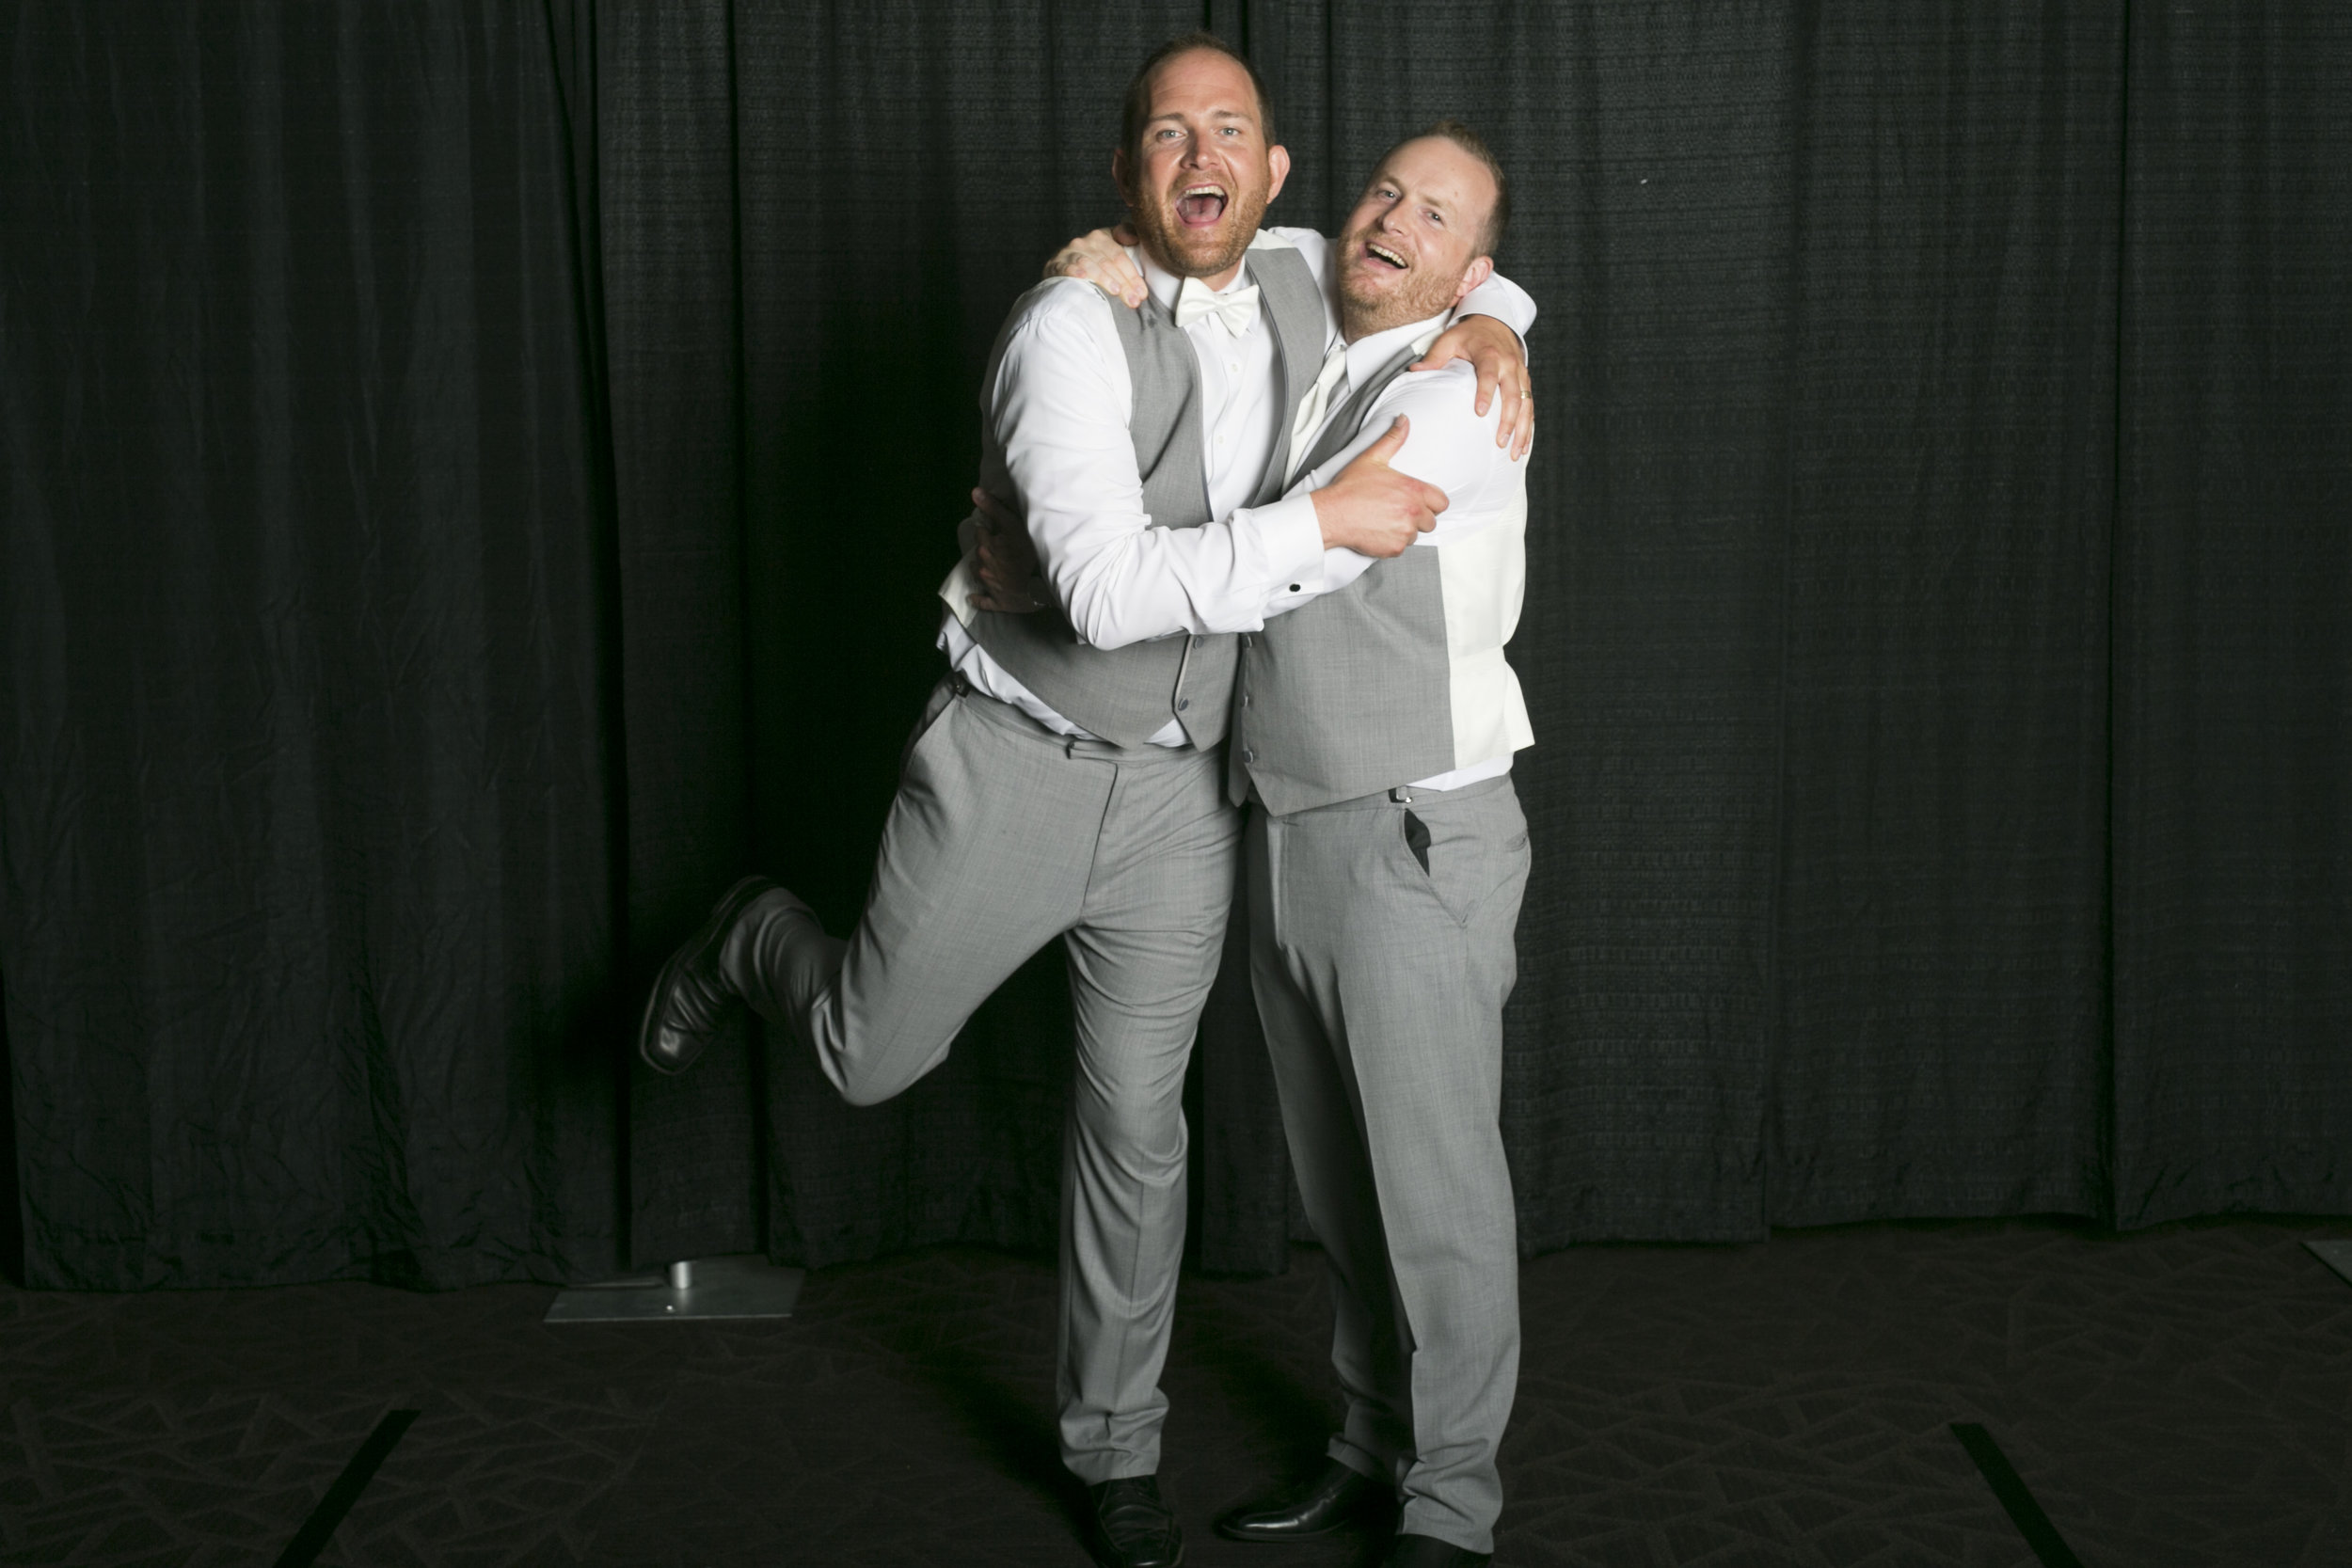 wedding photo booth-155.jpg